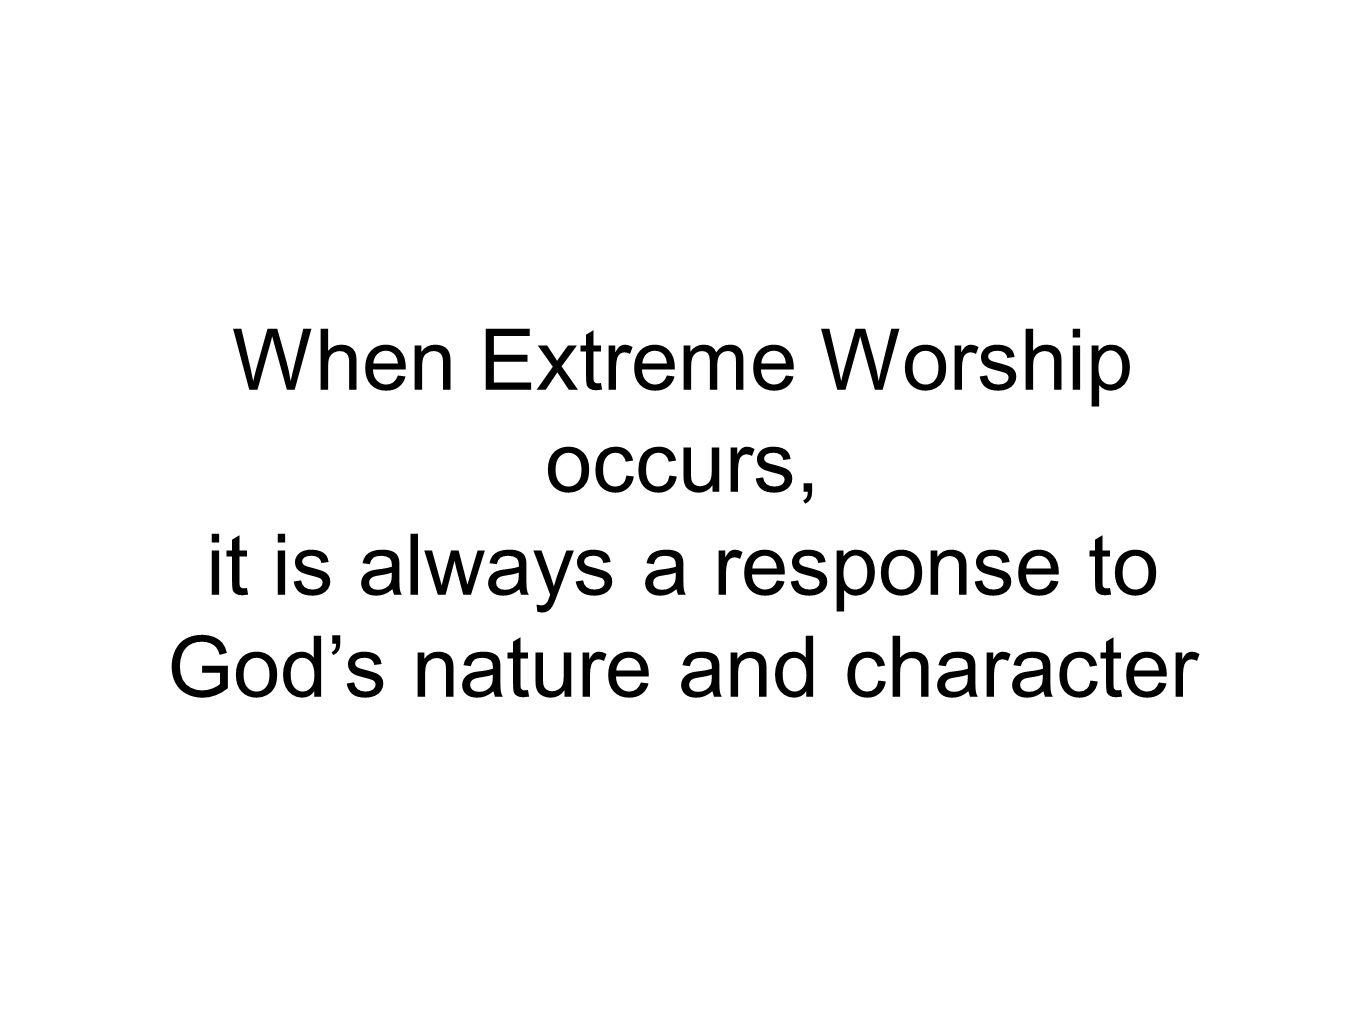 When Extreme Worship occurs, it is always a response to God's nature and character